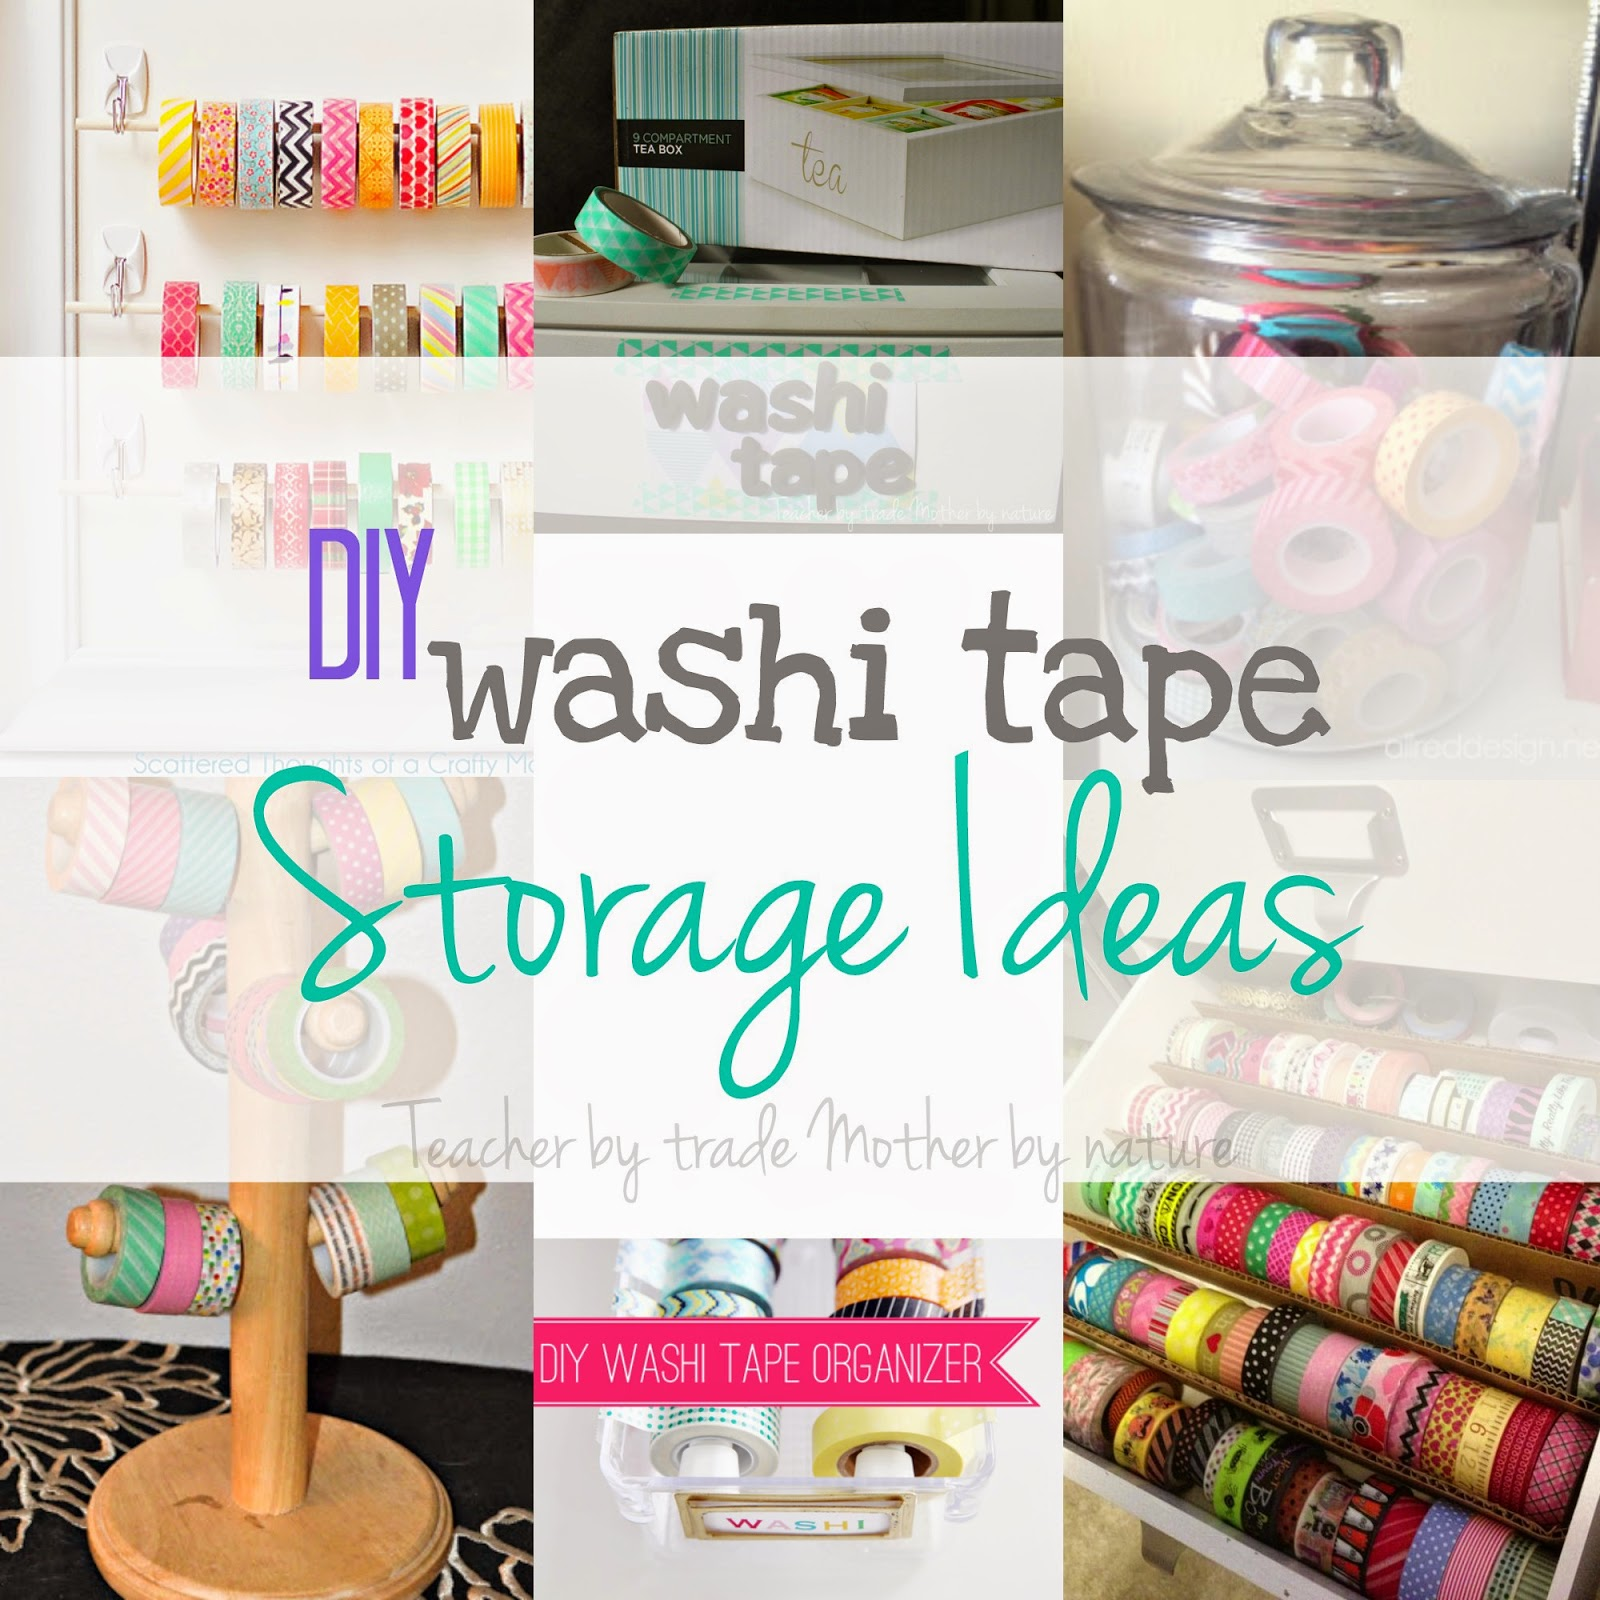 DIY: Washi Tape Storage Ideas - Teacher by trade, Mother by nature